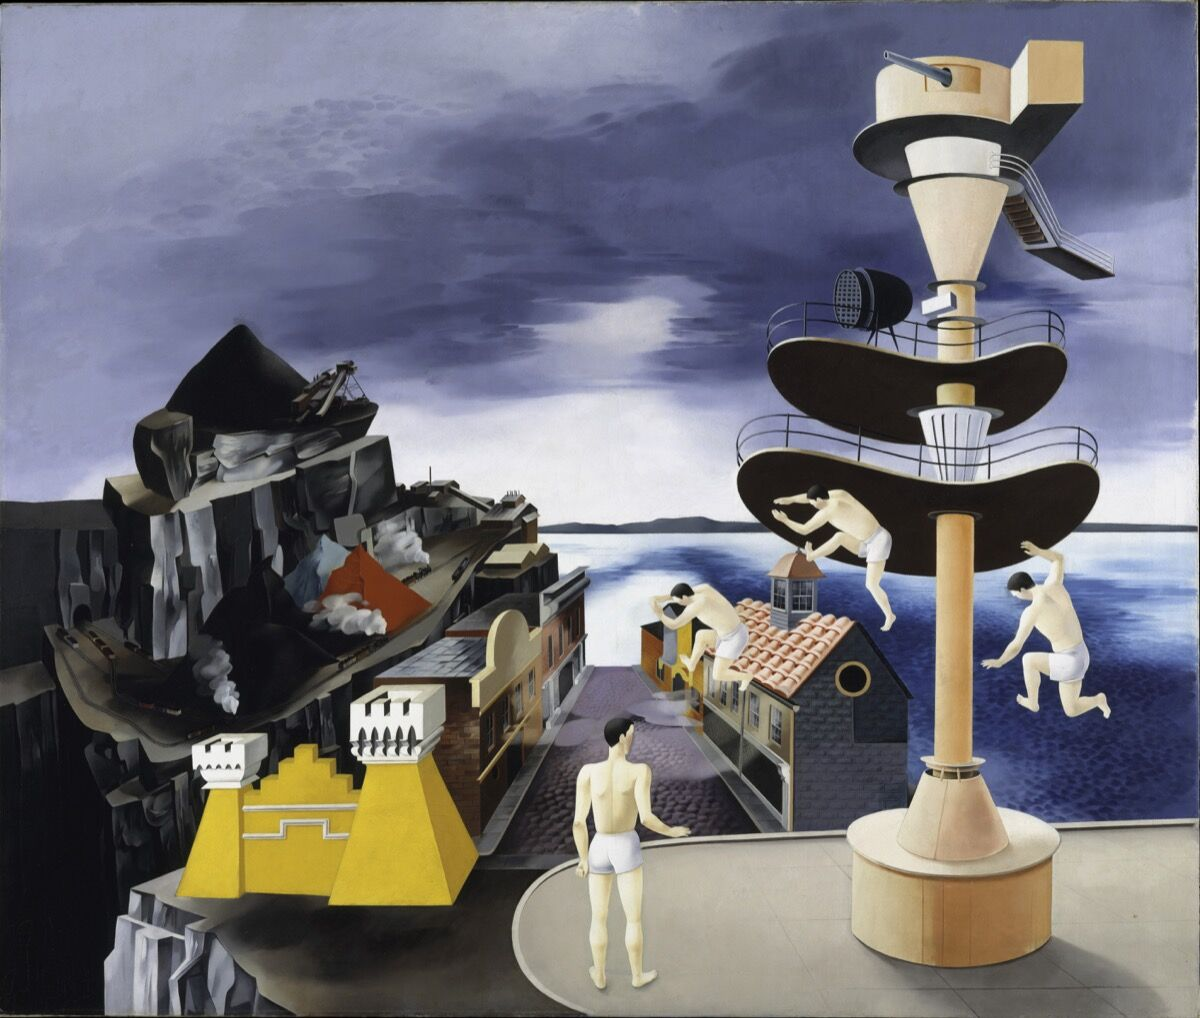 Peter Blume, South of Scranton, 1931.     Artwork © The Educational Alliance, Inc. / Estate of Peter Blume / Licensed by VAGA at Artists Rights Society (ARS), New York; image provided by the Metropolitan Museum of Art / Art Resource, New York. Courtesy of the Jewish Museum.